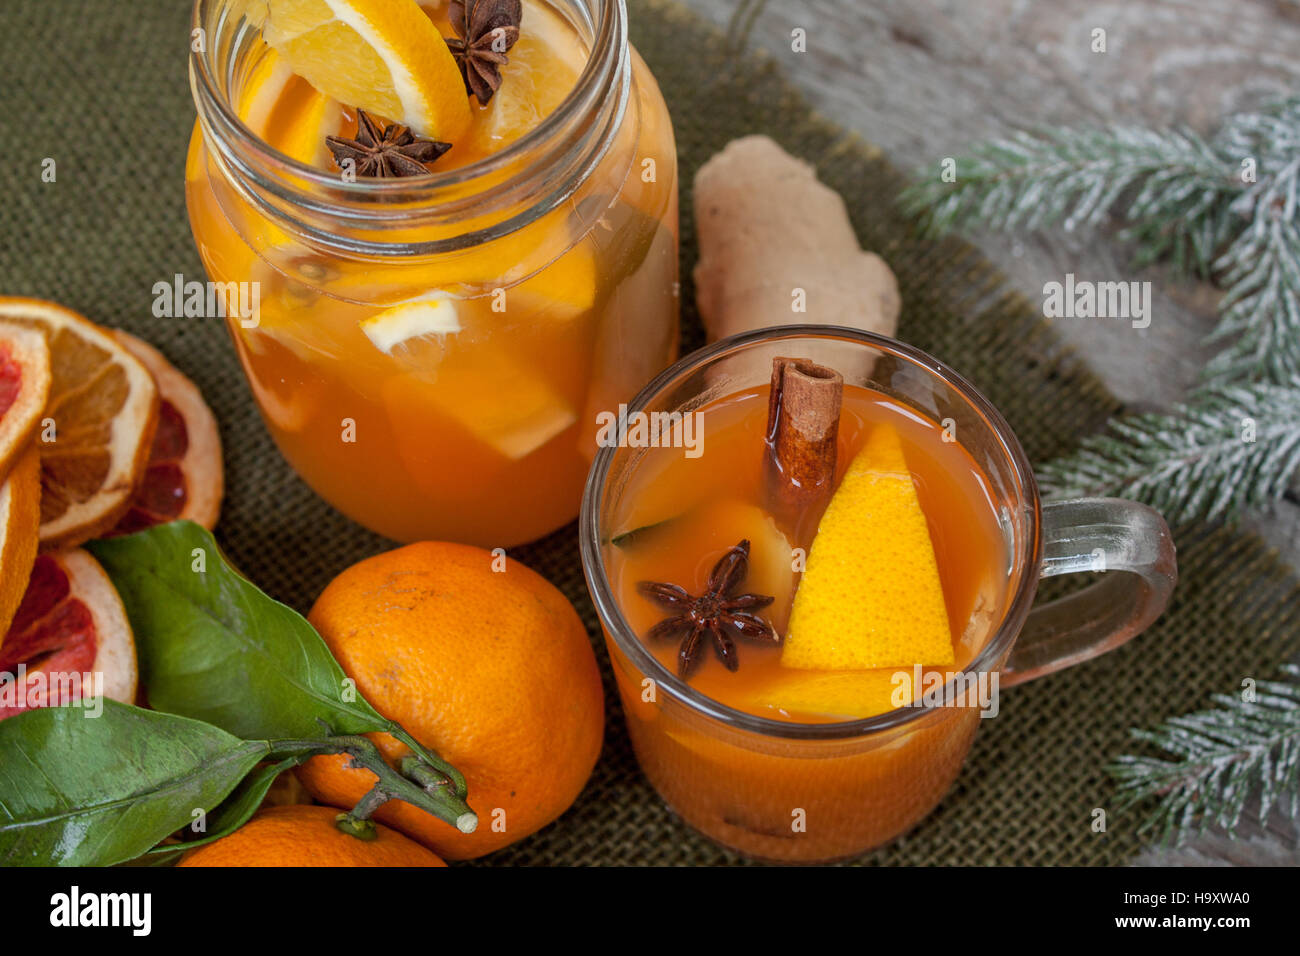 Winter healing ginger drink with lemon, honey and oranges. Cinnamon, star anise, fir twigs, tangerines, dried grapefruit. - Stock Image